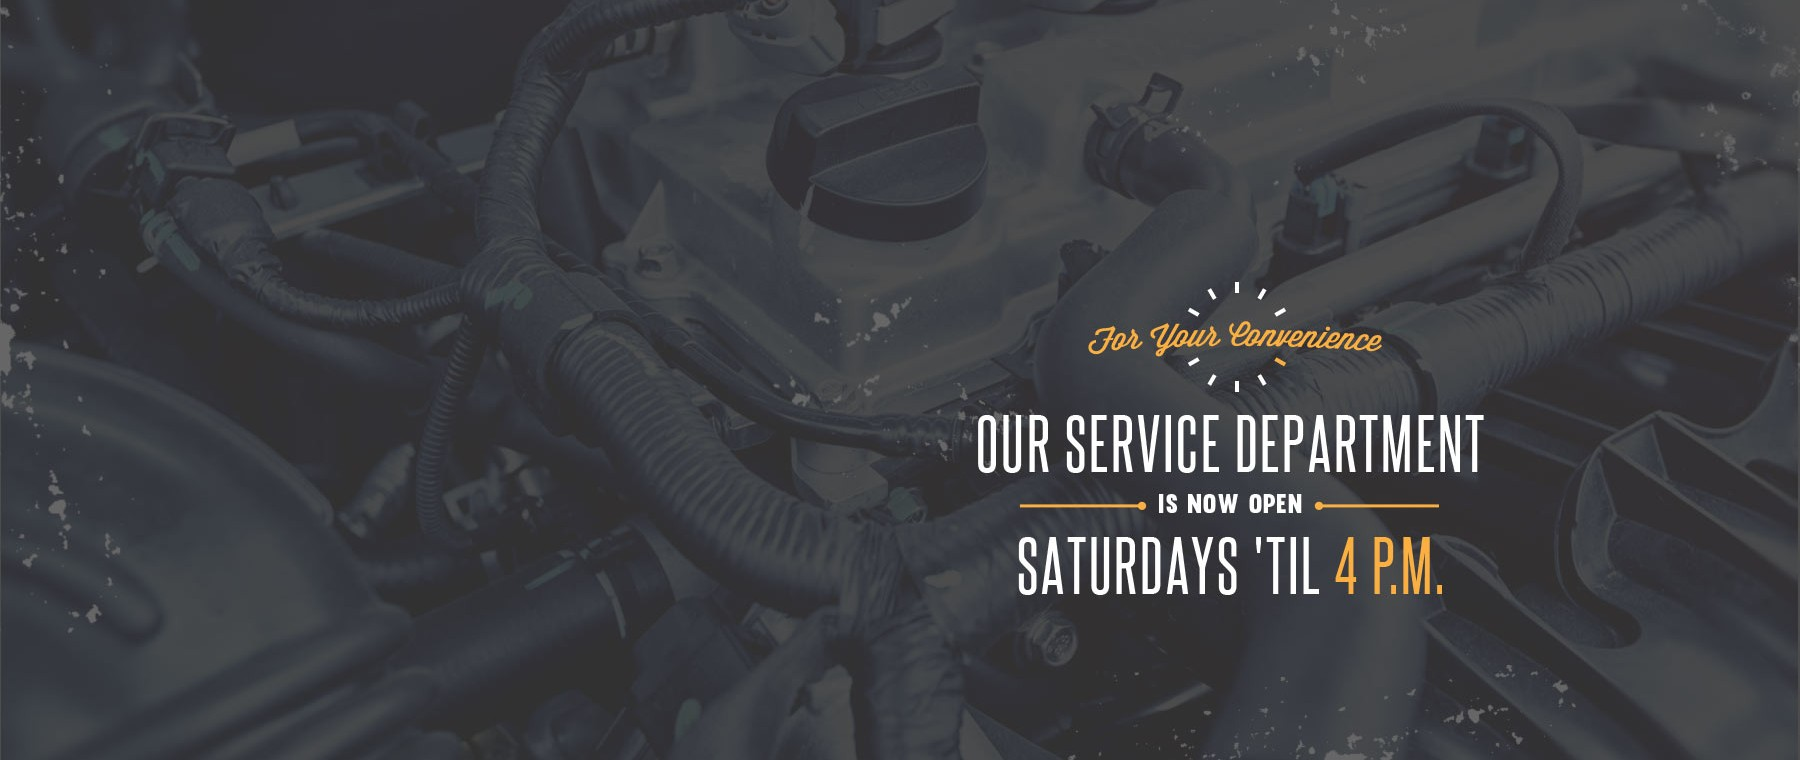 Service Department Open Late